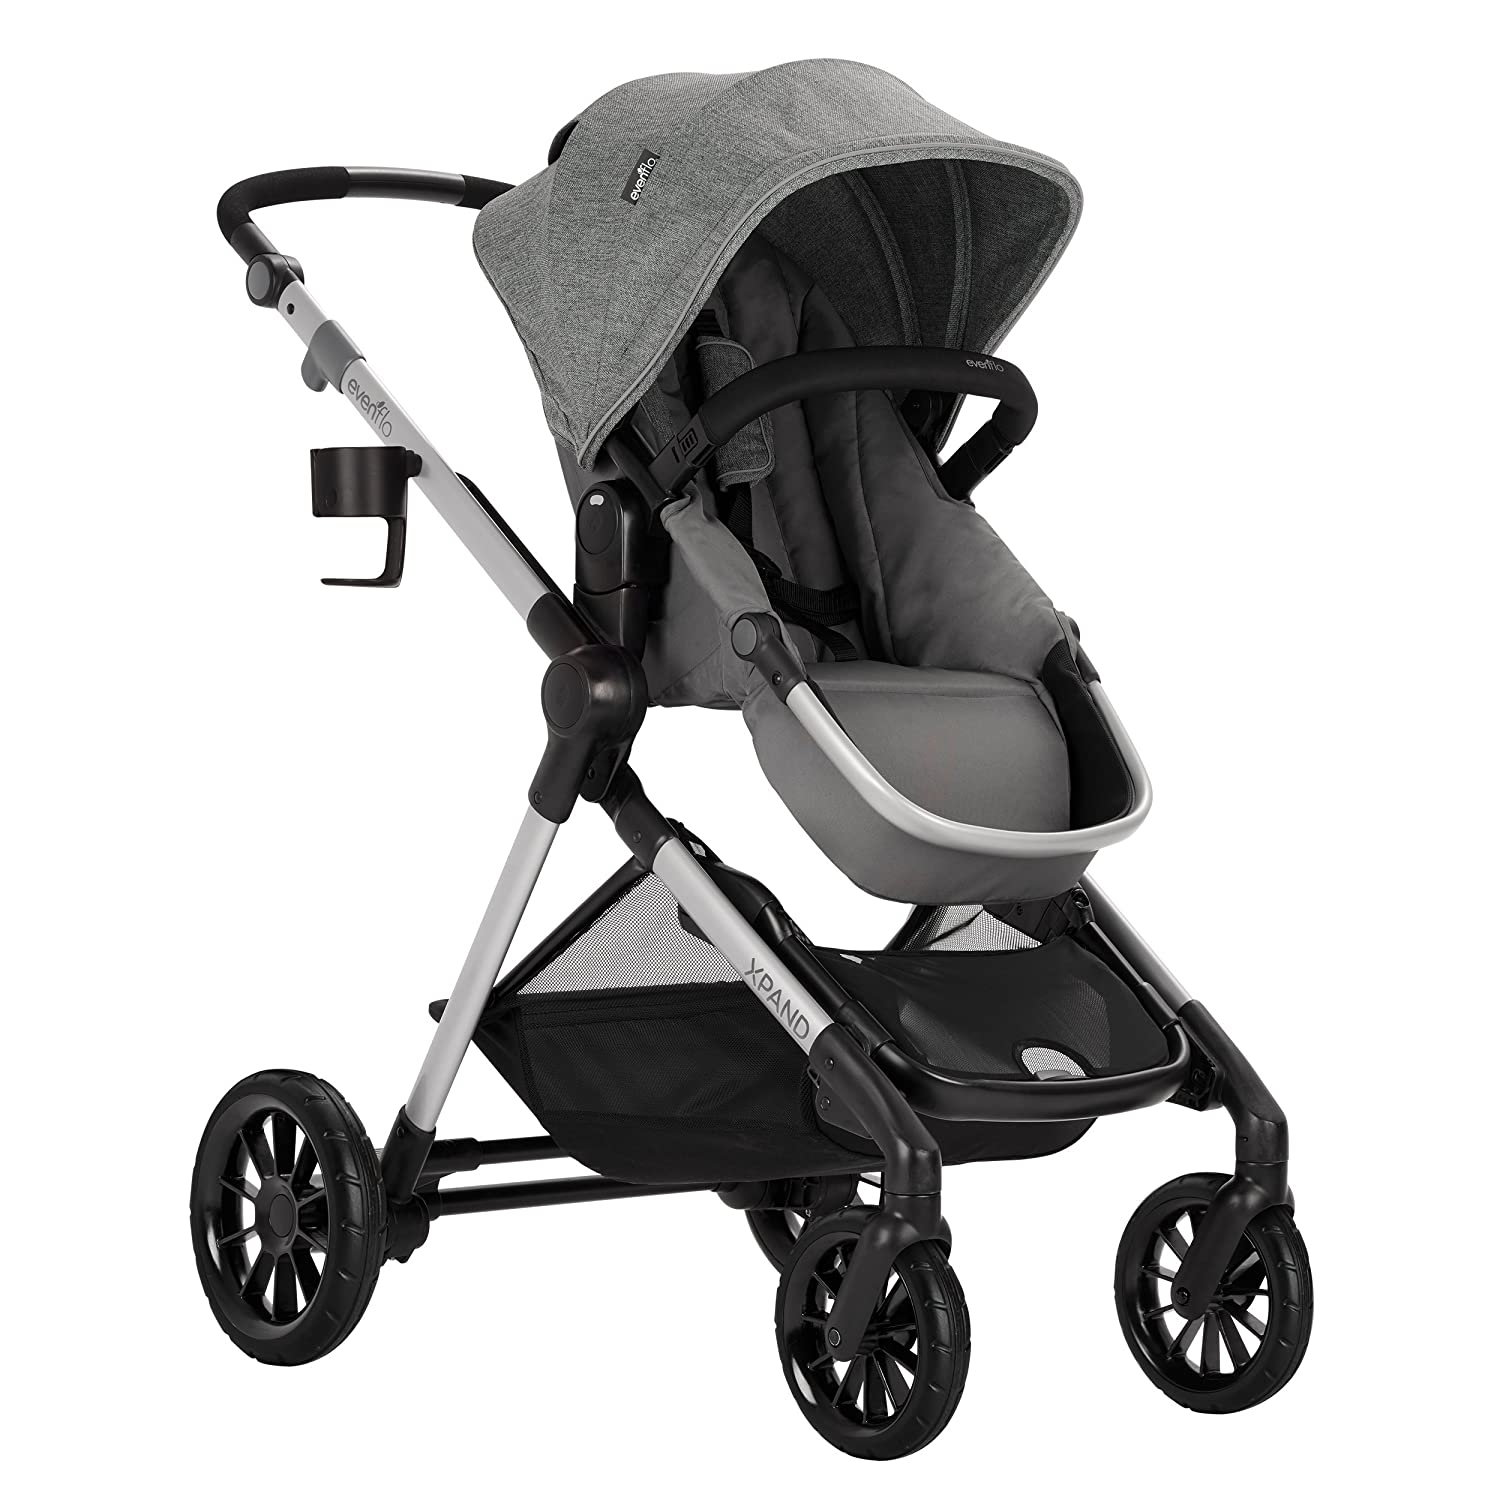 91cPebD8FVL. SL1500 15 Best Umbrella Strollers for 2021 [Picked by Parents]